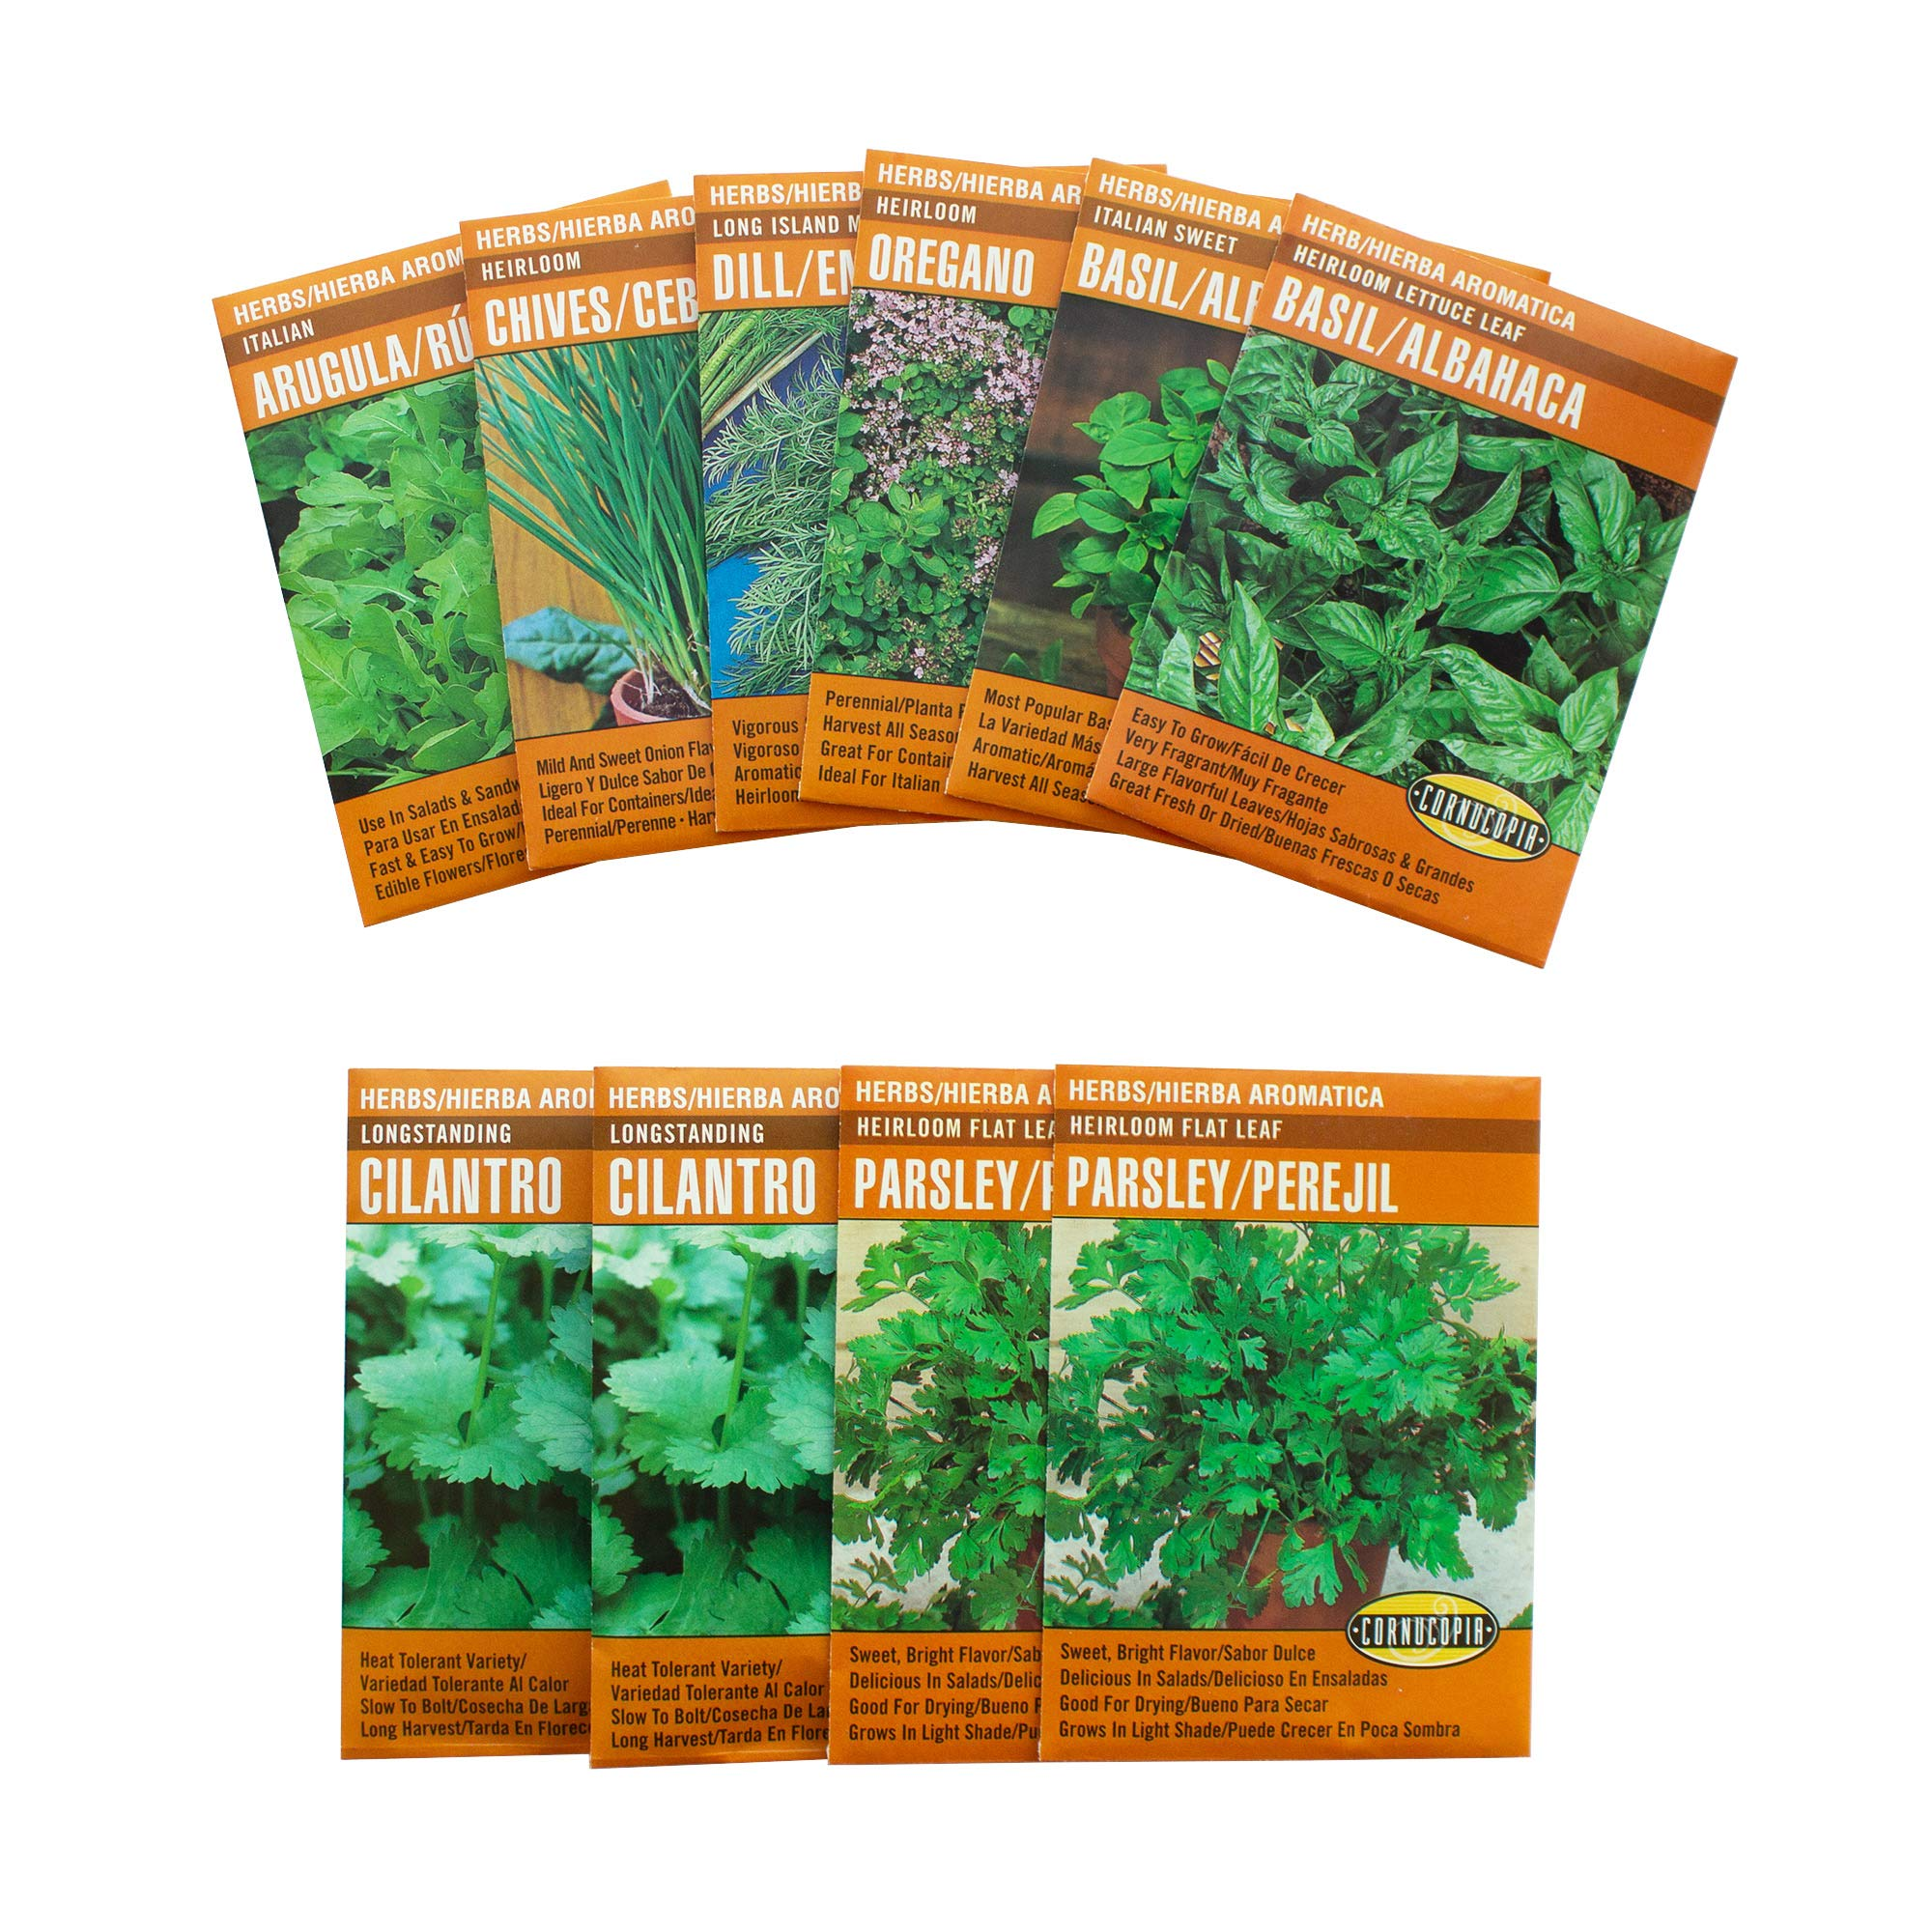 Bilingual Deluxe Culinary Herb Garden Seeds Collection - 10 Seed Packets - Cornucopia English & Spanish Instructions - Arugula, Parsley, Dill, Cilantro, Chives, Basil - Semillas - Español e Inglés by Cornucopia Garden Seeds